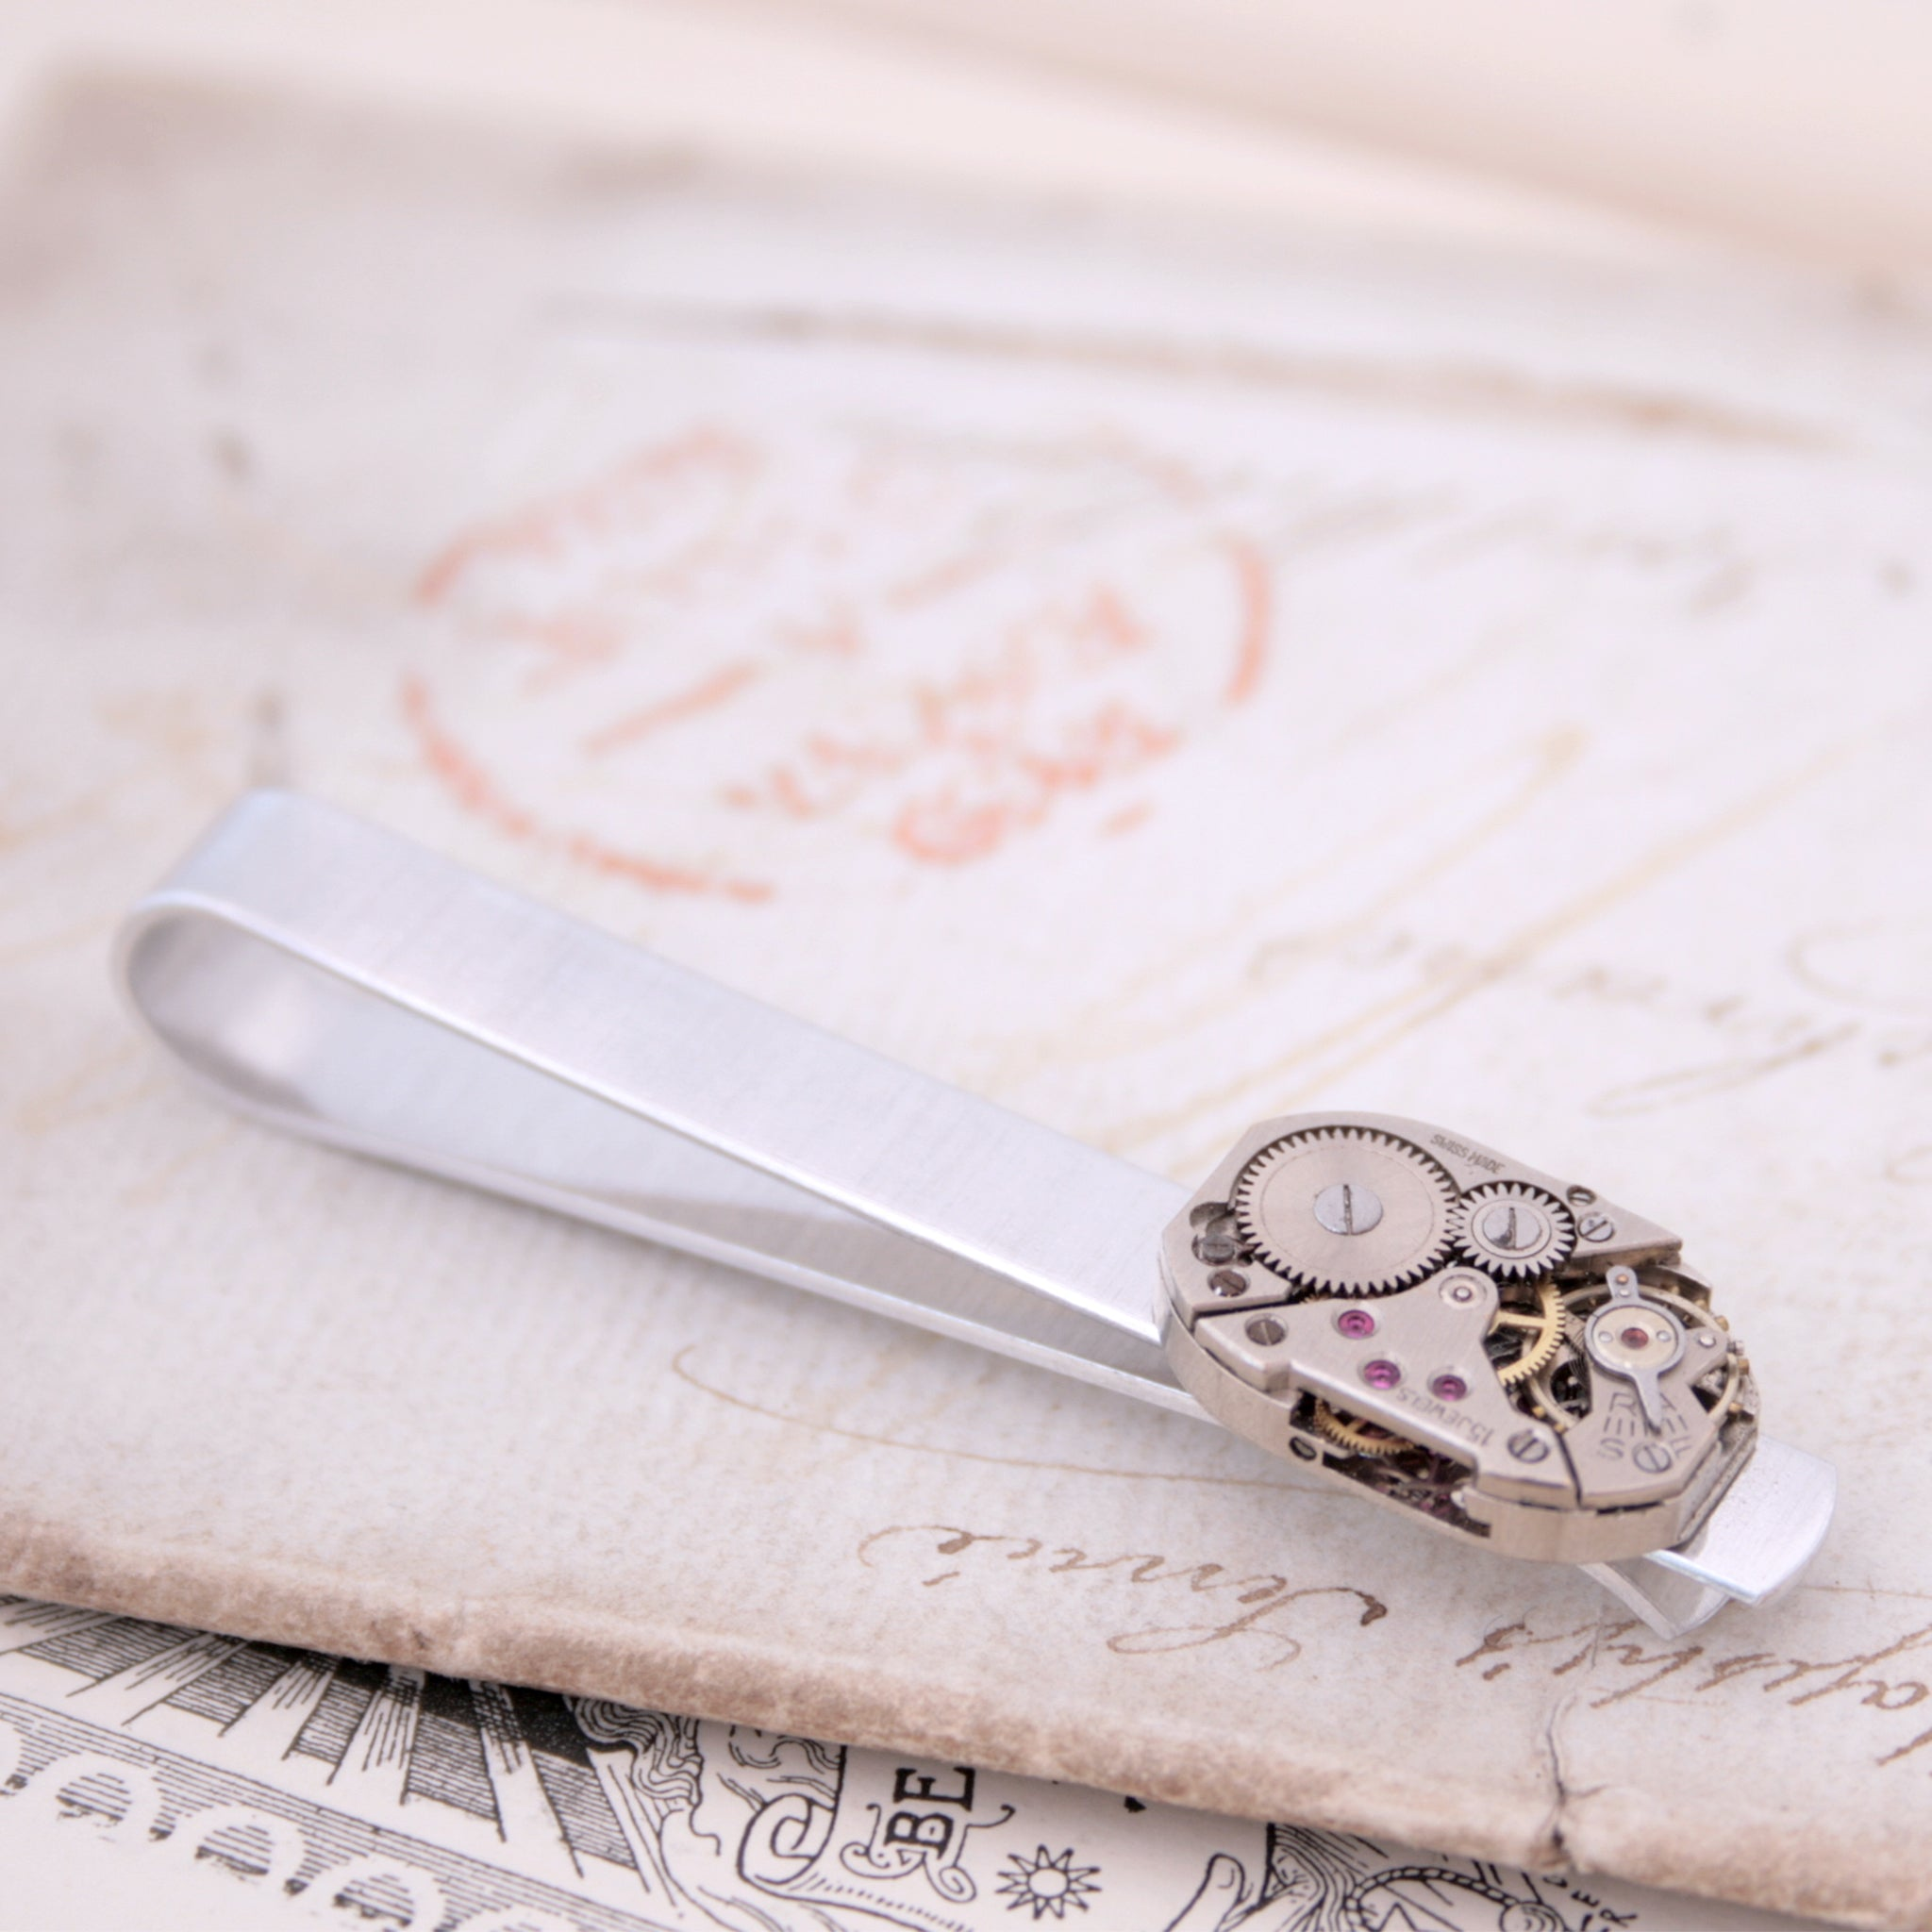 Tie Bar with antique watch movement